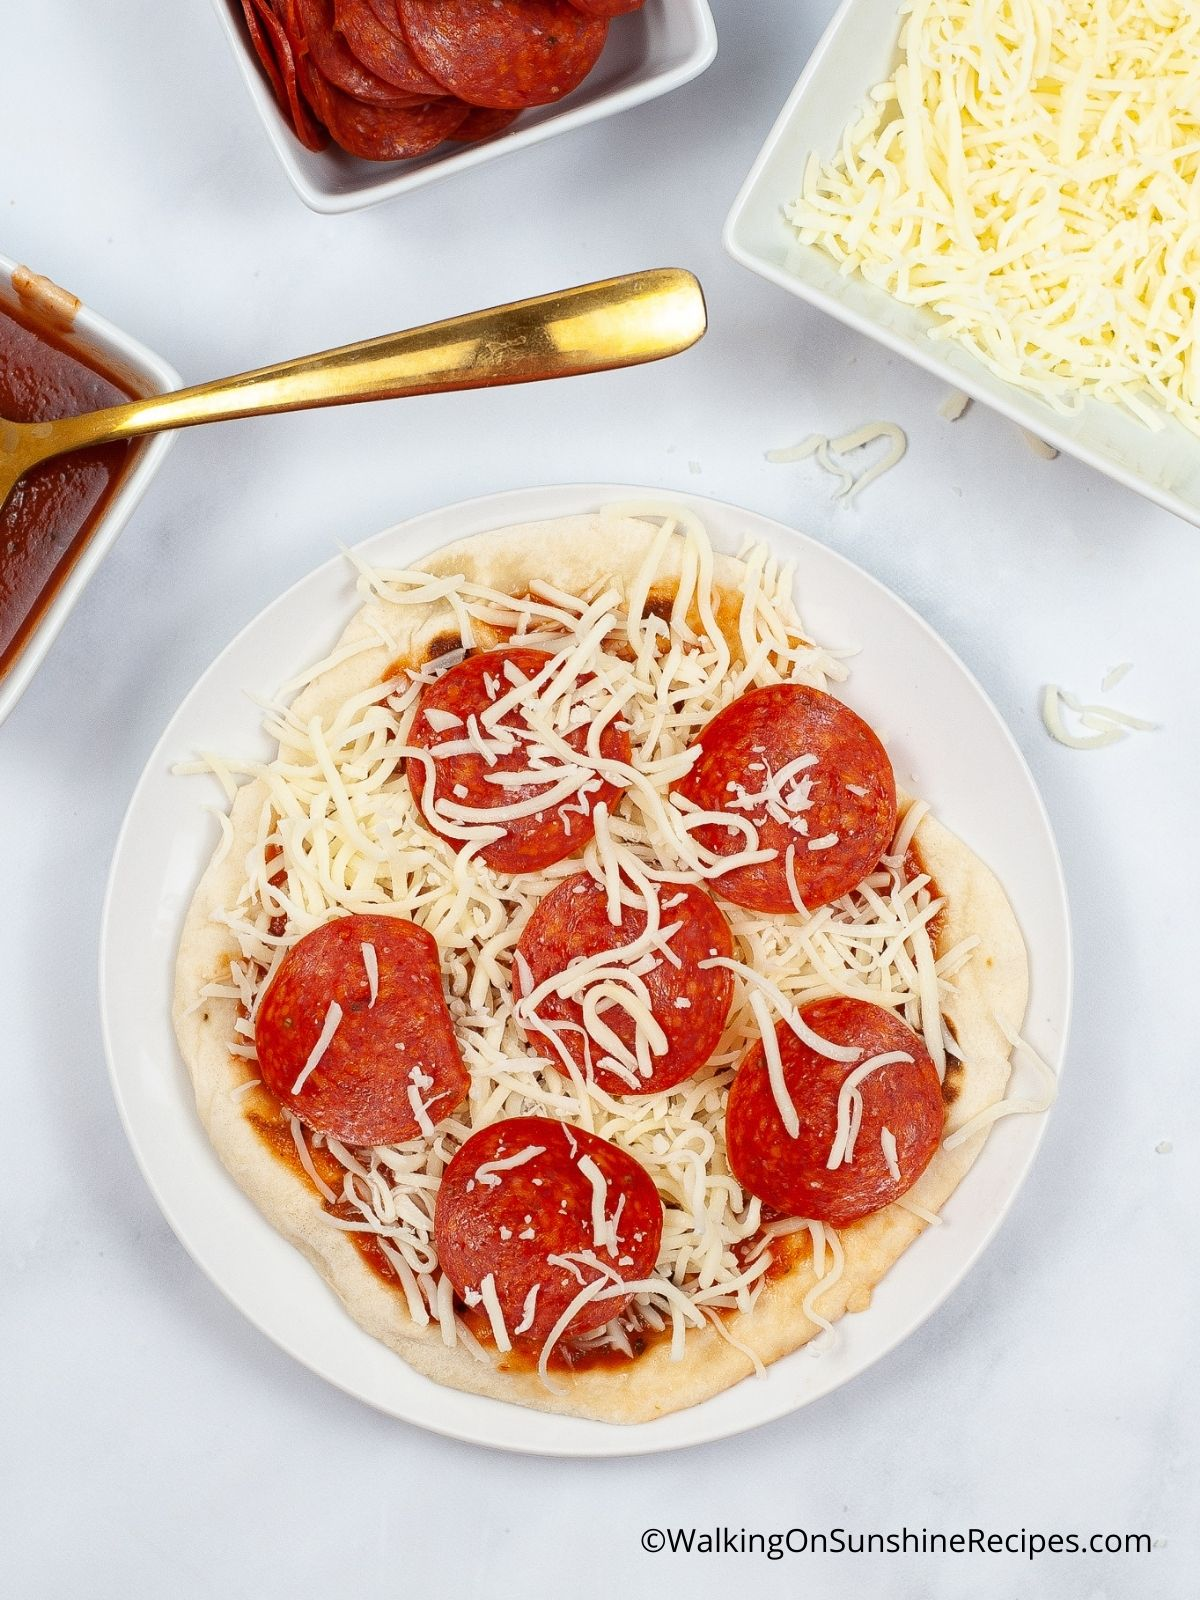 air fryer pizza before baking.